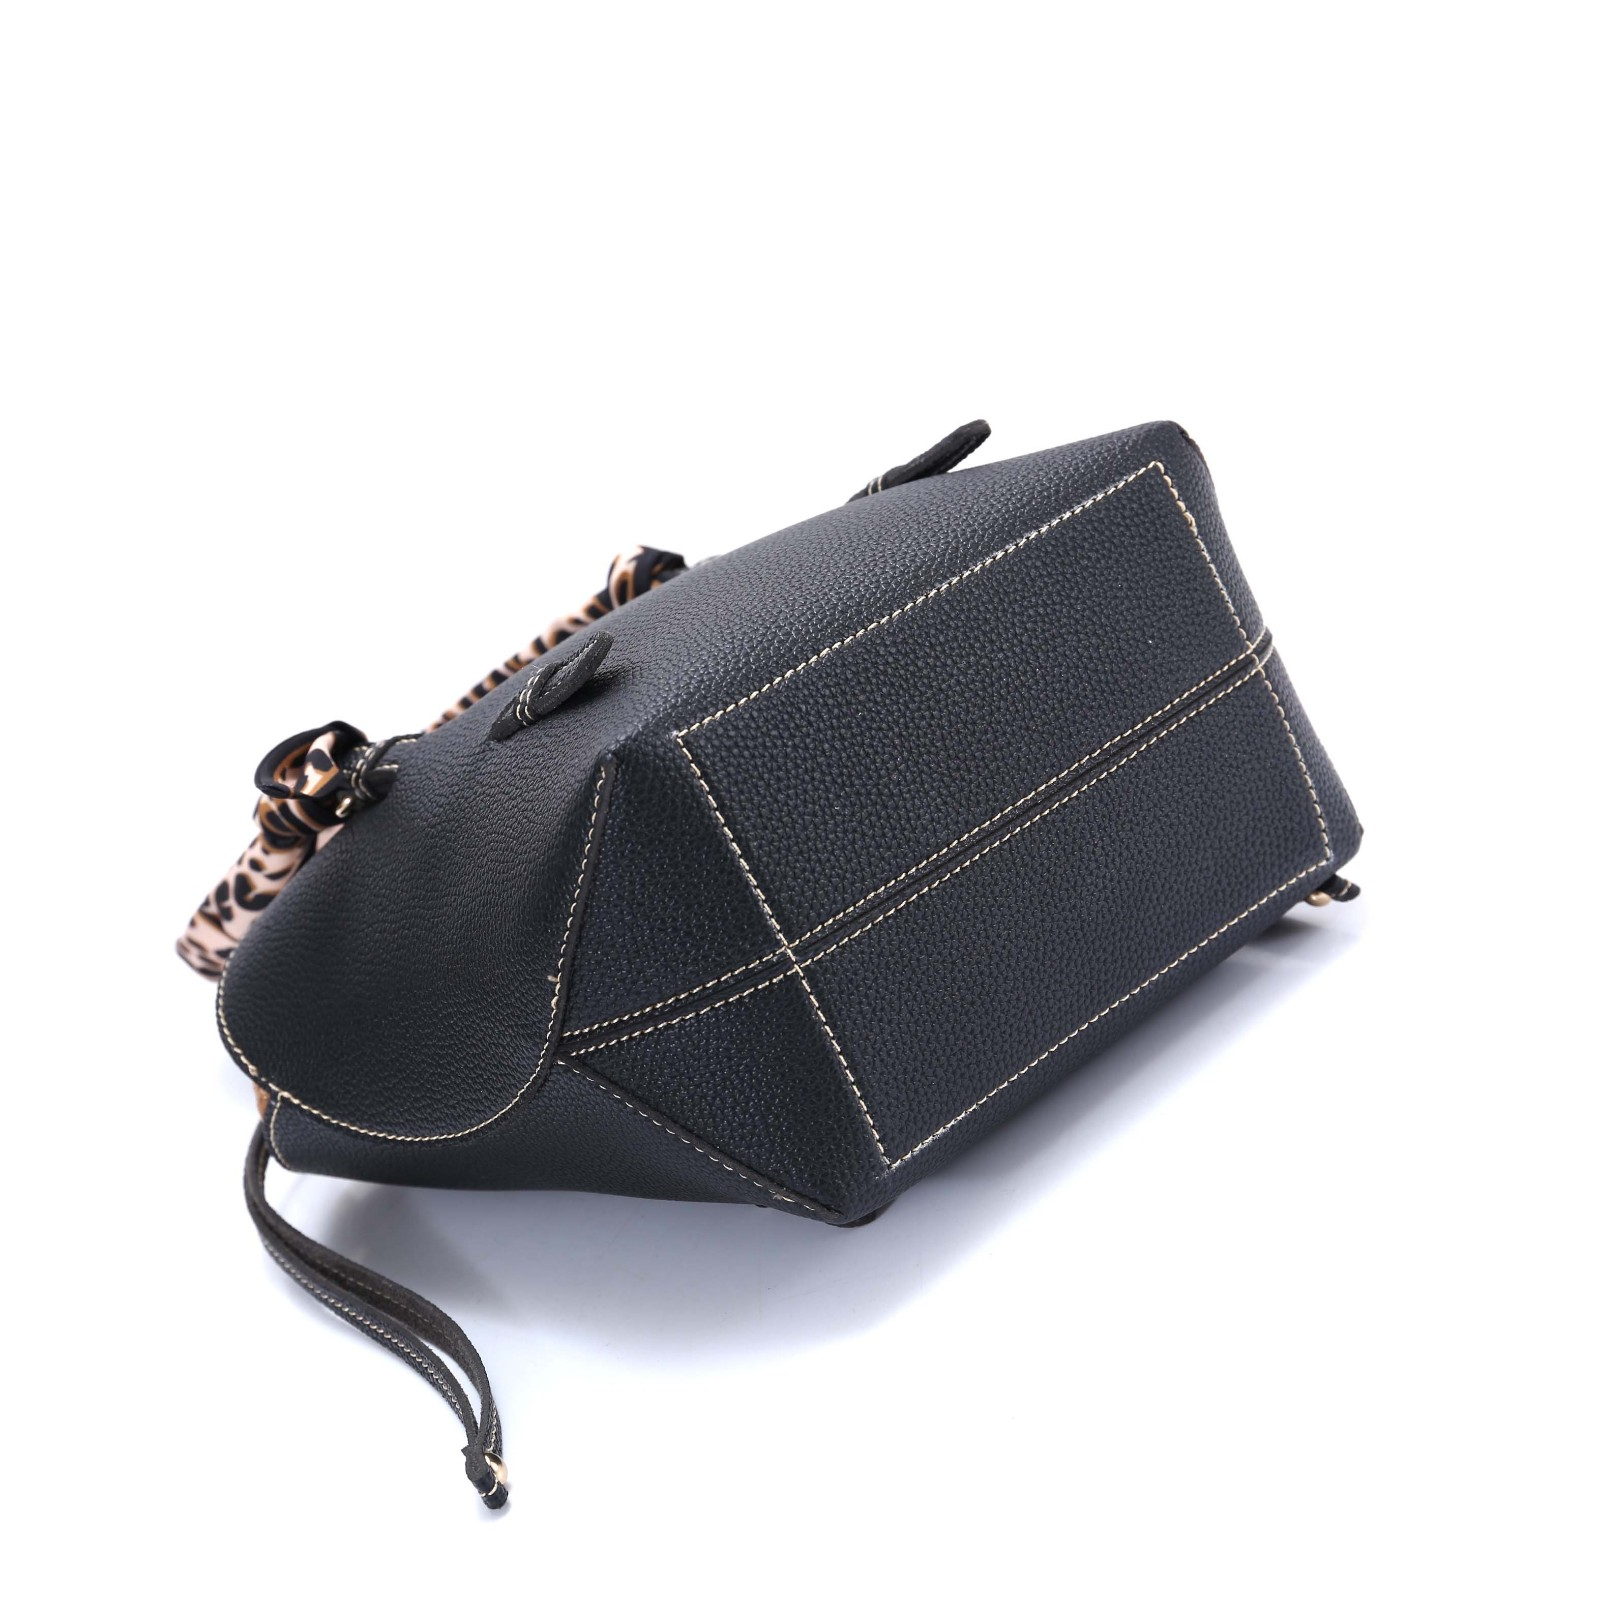 ANGEDANLIA elegant black leather purse for sale for work-7